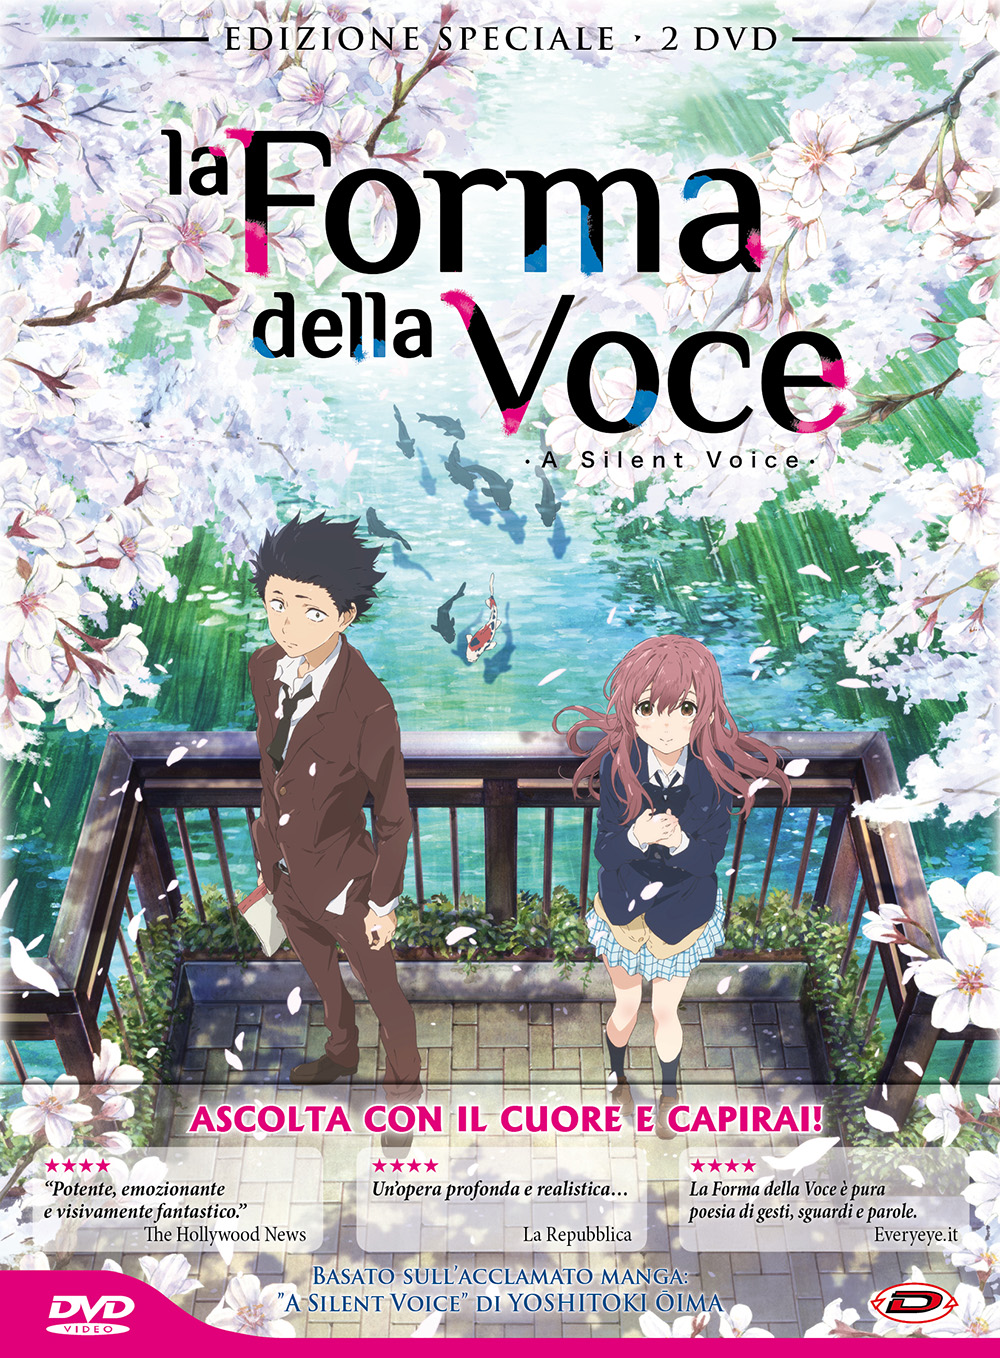 LA FORMA DELLA VOCE (SPECIAL EDITION) (2 DVD) (FIRST PRESS) (DVD)